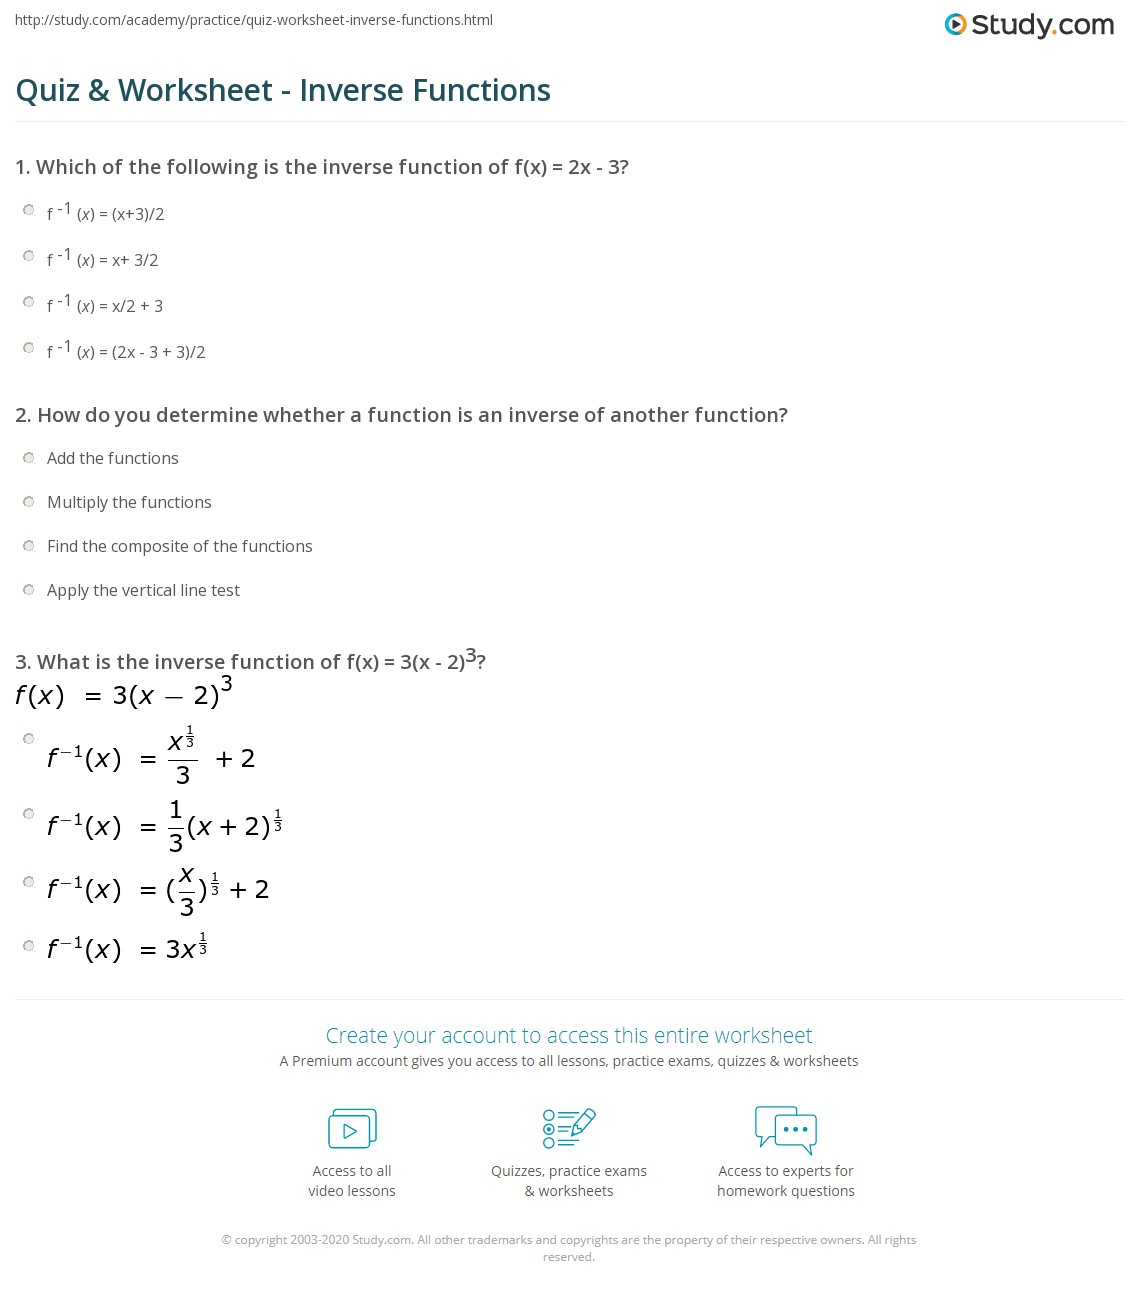 Pre Calculus Inverse Functions Math Inverse Functions Worksheet Free together with  as well Inverse Functions Worksheet with Answers   WRITING WORKSHEET additionally Inverse Functions Worksheet Answers New Inverse Functions Worksheet besides Inverse Functions Worksheet Alge 2 Math Alge 2 Review also Math Worksheets Grades 1 6   Inverse Functions Worksheet Inverse Of in addition Inverse Functions Worksheet   Homedressage besides alge 2 inverse functions worksheet answers Archives   La Union as well 30 Inverse Functions Worksheet – 7th Grade Math Worksheets likewise Printables  Inverse Functions Worksheet  Lemonlilyfestival moreover  together with Quiz   Worksheet   Inverse Functions   Study further alge 2 inverse functions worksheet – tahiro info furthermore Worksheet 7 4 Inverse Functions Answers   Briefencounters additionally Function Operations Alge 2 Awesome Inverse Functions Worksheet further Inverse Functions Worksheet Answer Key   Briefencounters. on inverse functions worksheet with answers